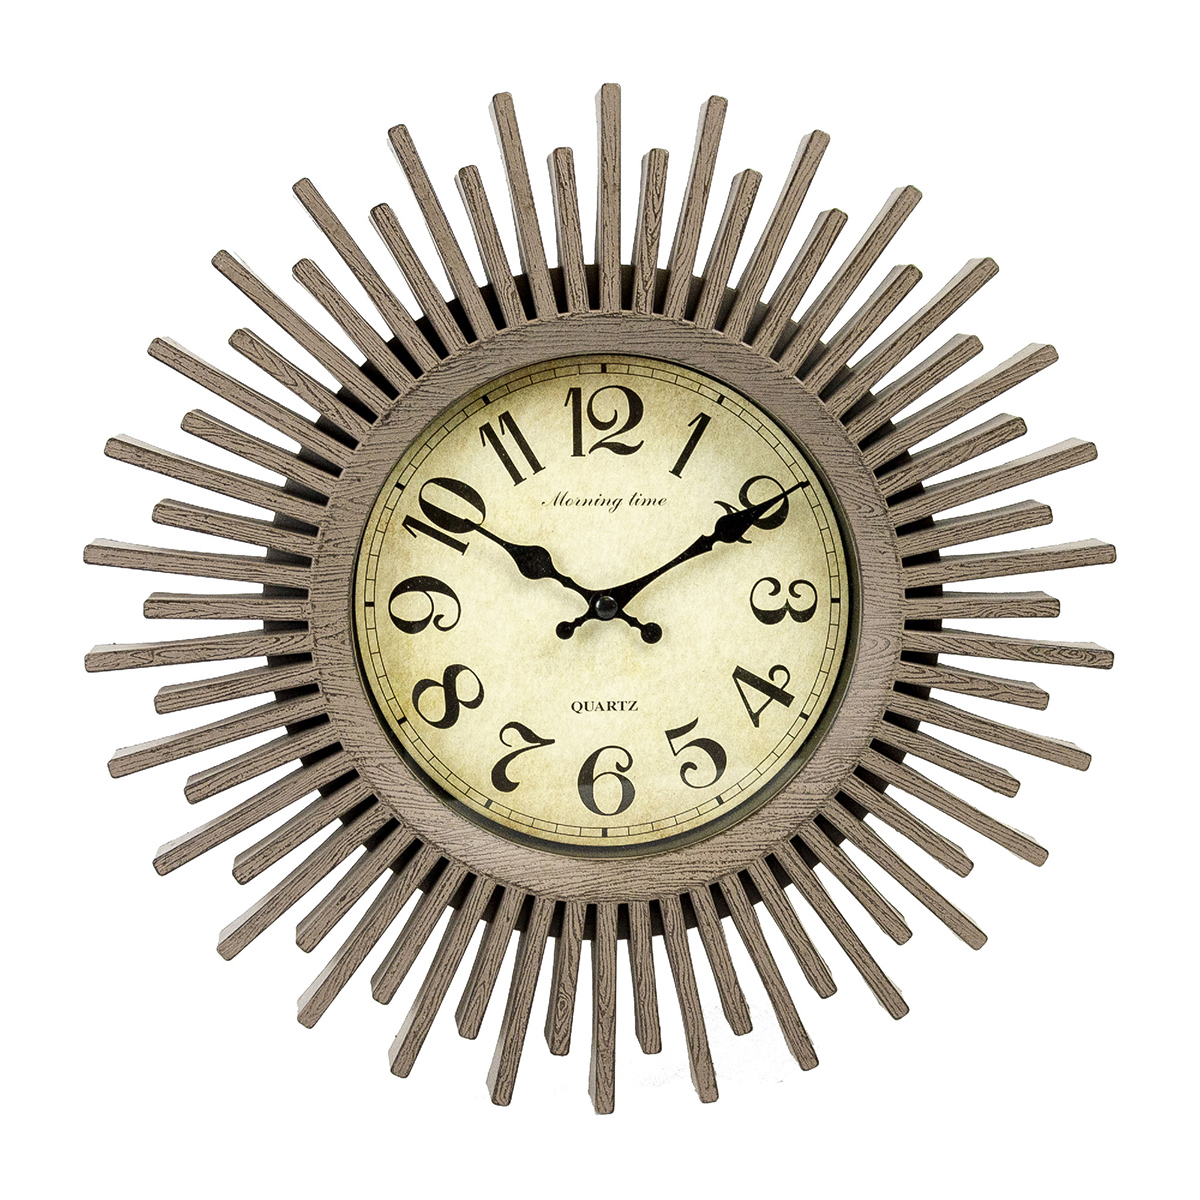 12.5 inch Wall Clock, Wood